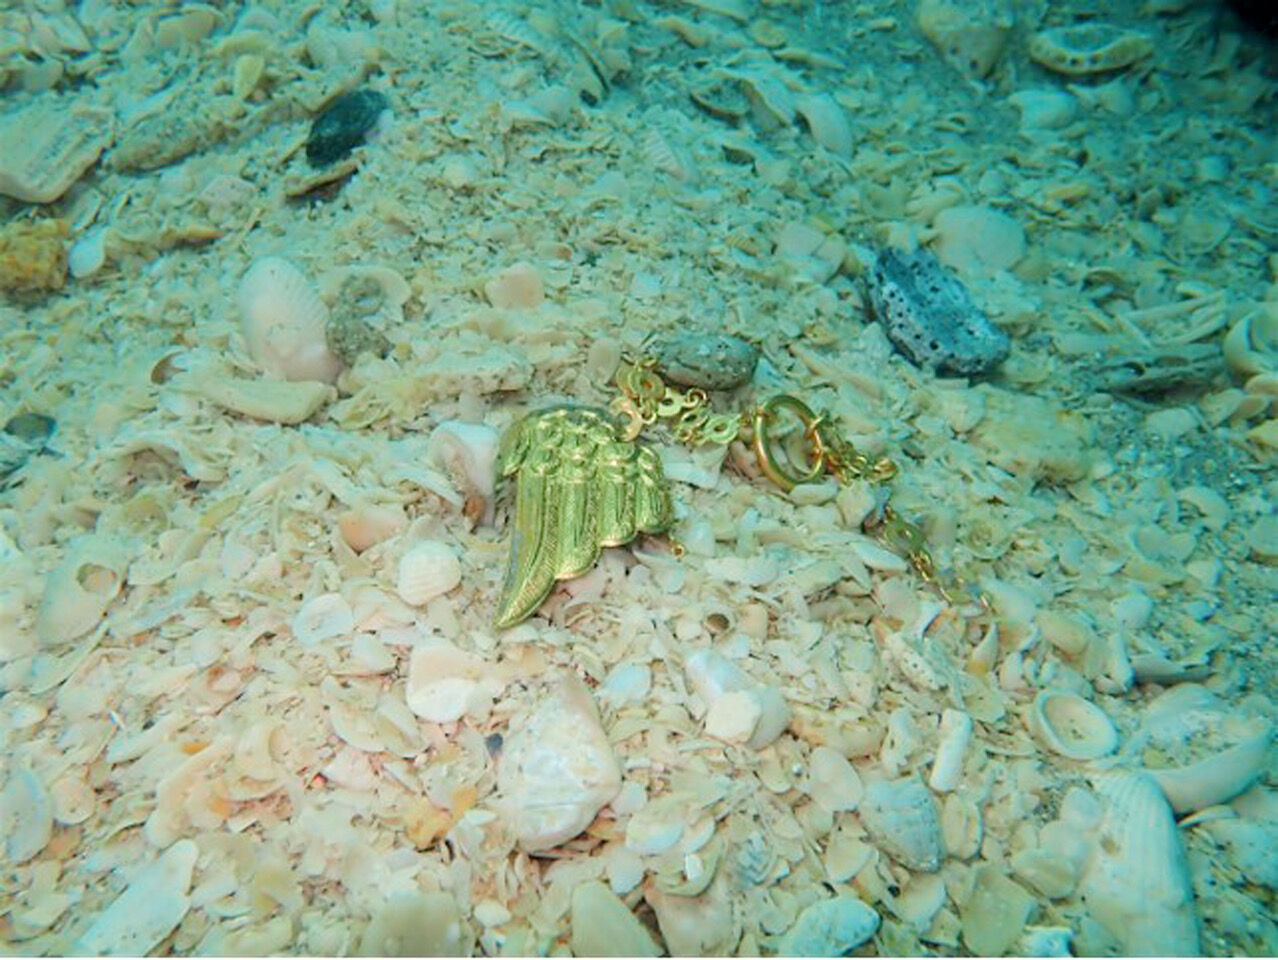 Gold pelican's wing found in shipwreck